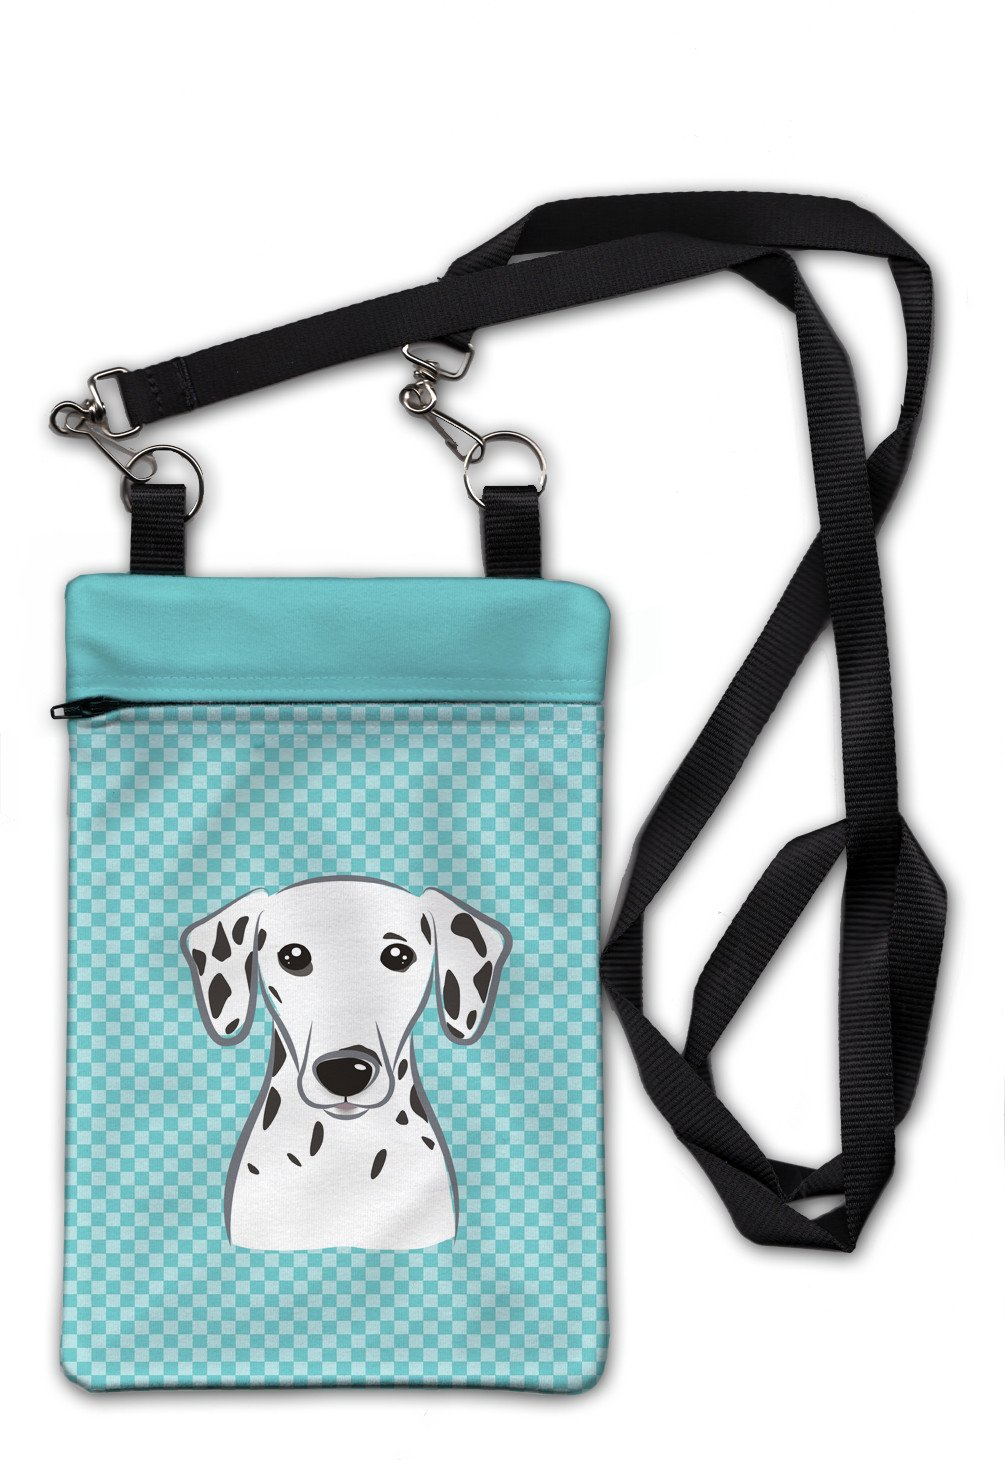 Checkerboard Blue Dalmatian Crossbody Bag Purse BB1148OBDY by Caroline's Treasures